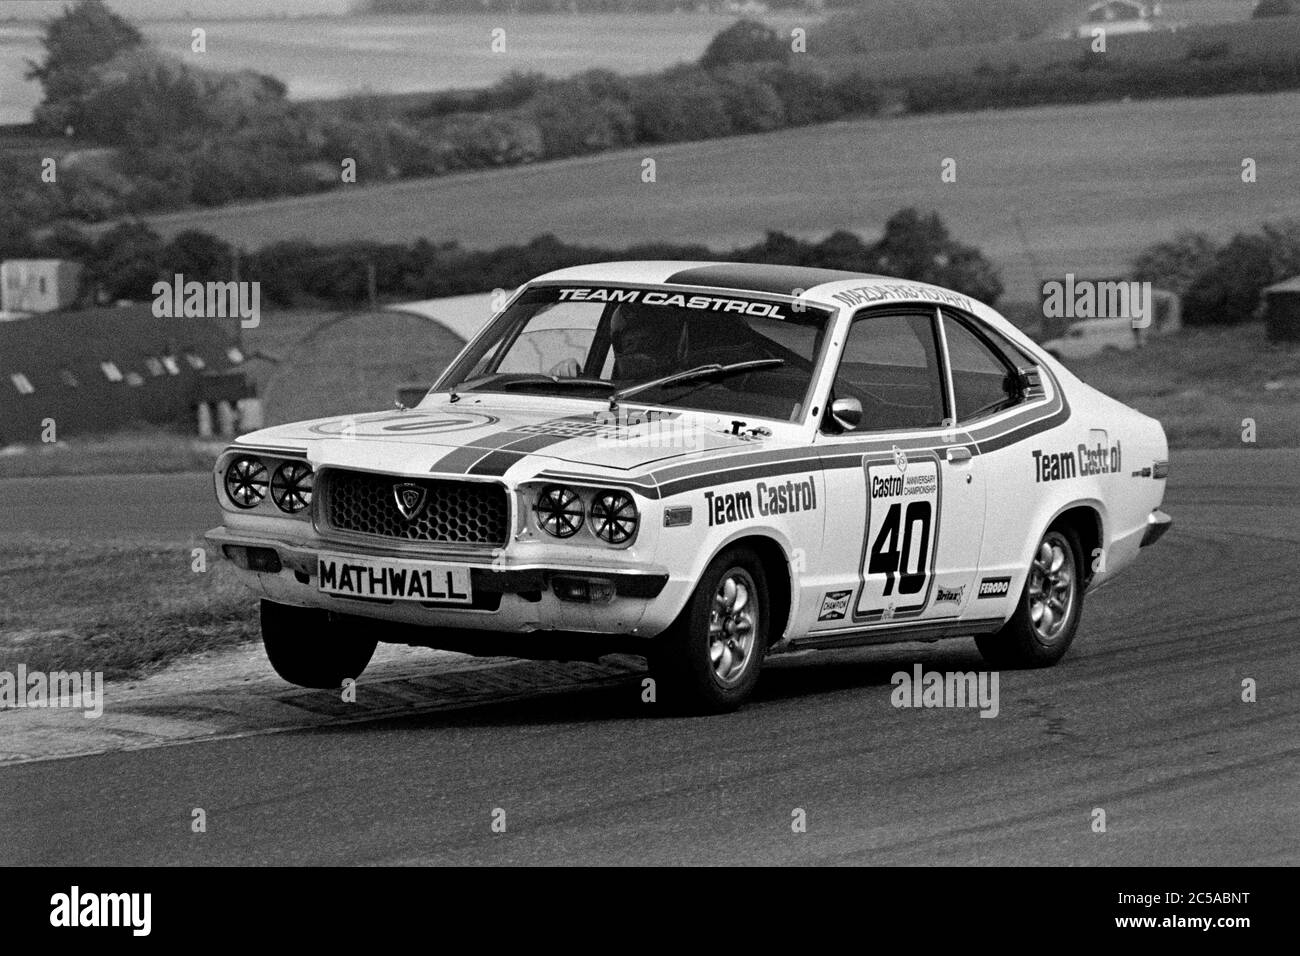 Barrie Whizzo Williams, in 70's saloon car action at Thruxton. Stock Photo